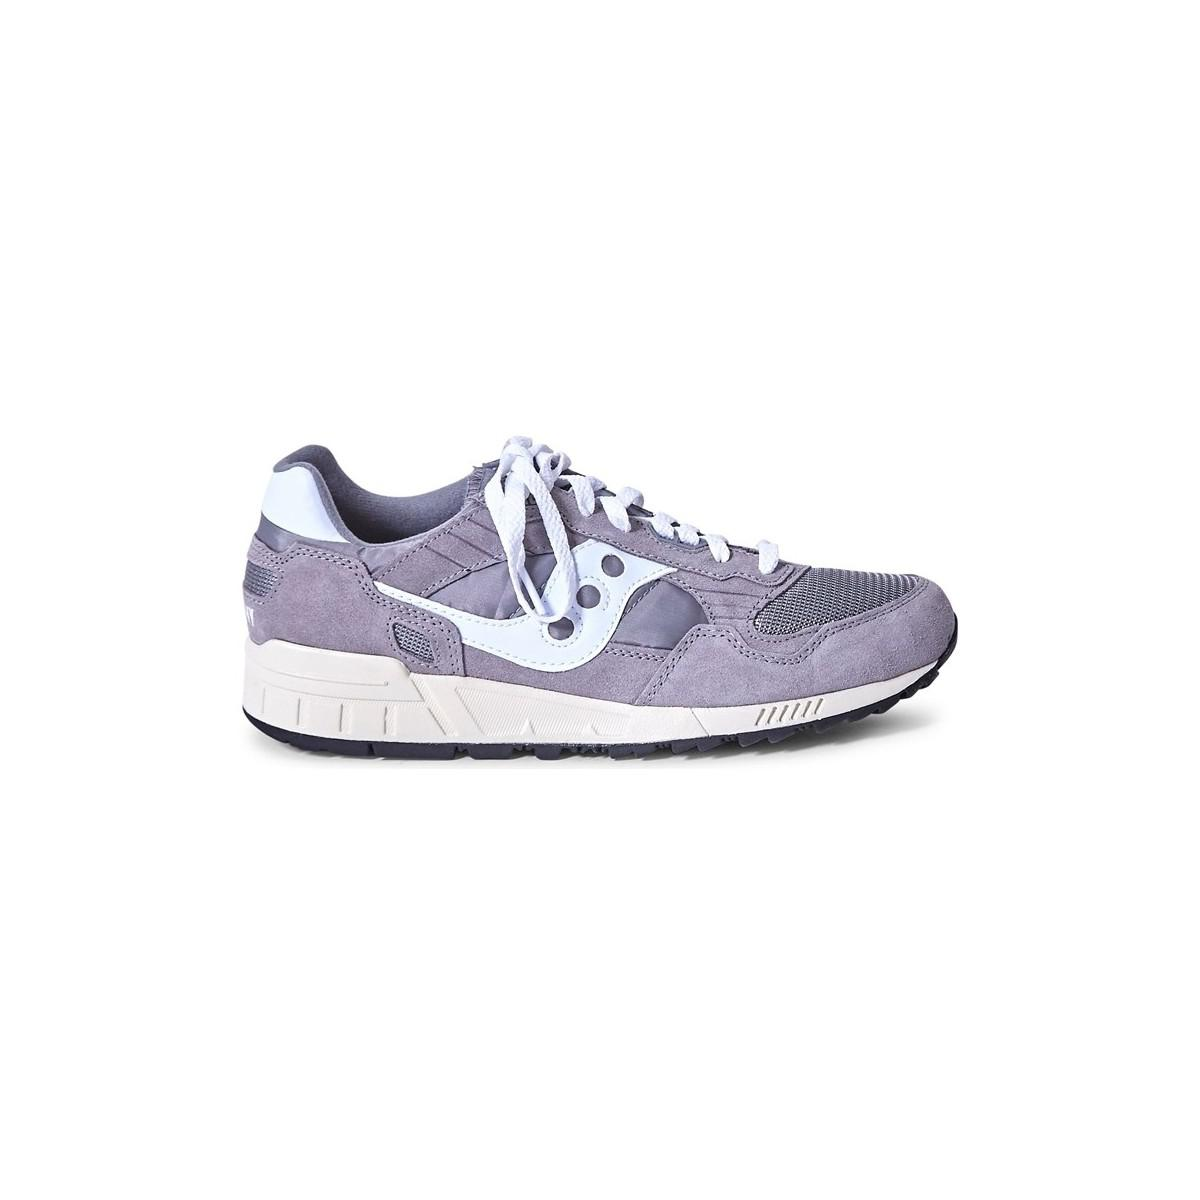 Shadow 5000 Vintage, Mens Low Trainers Saucony